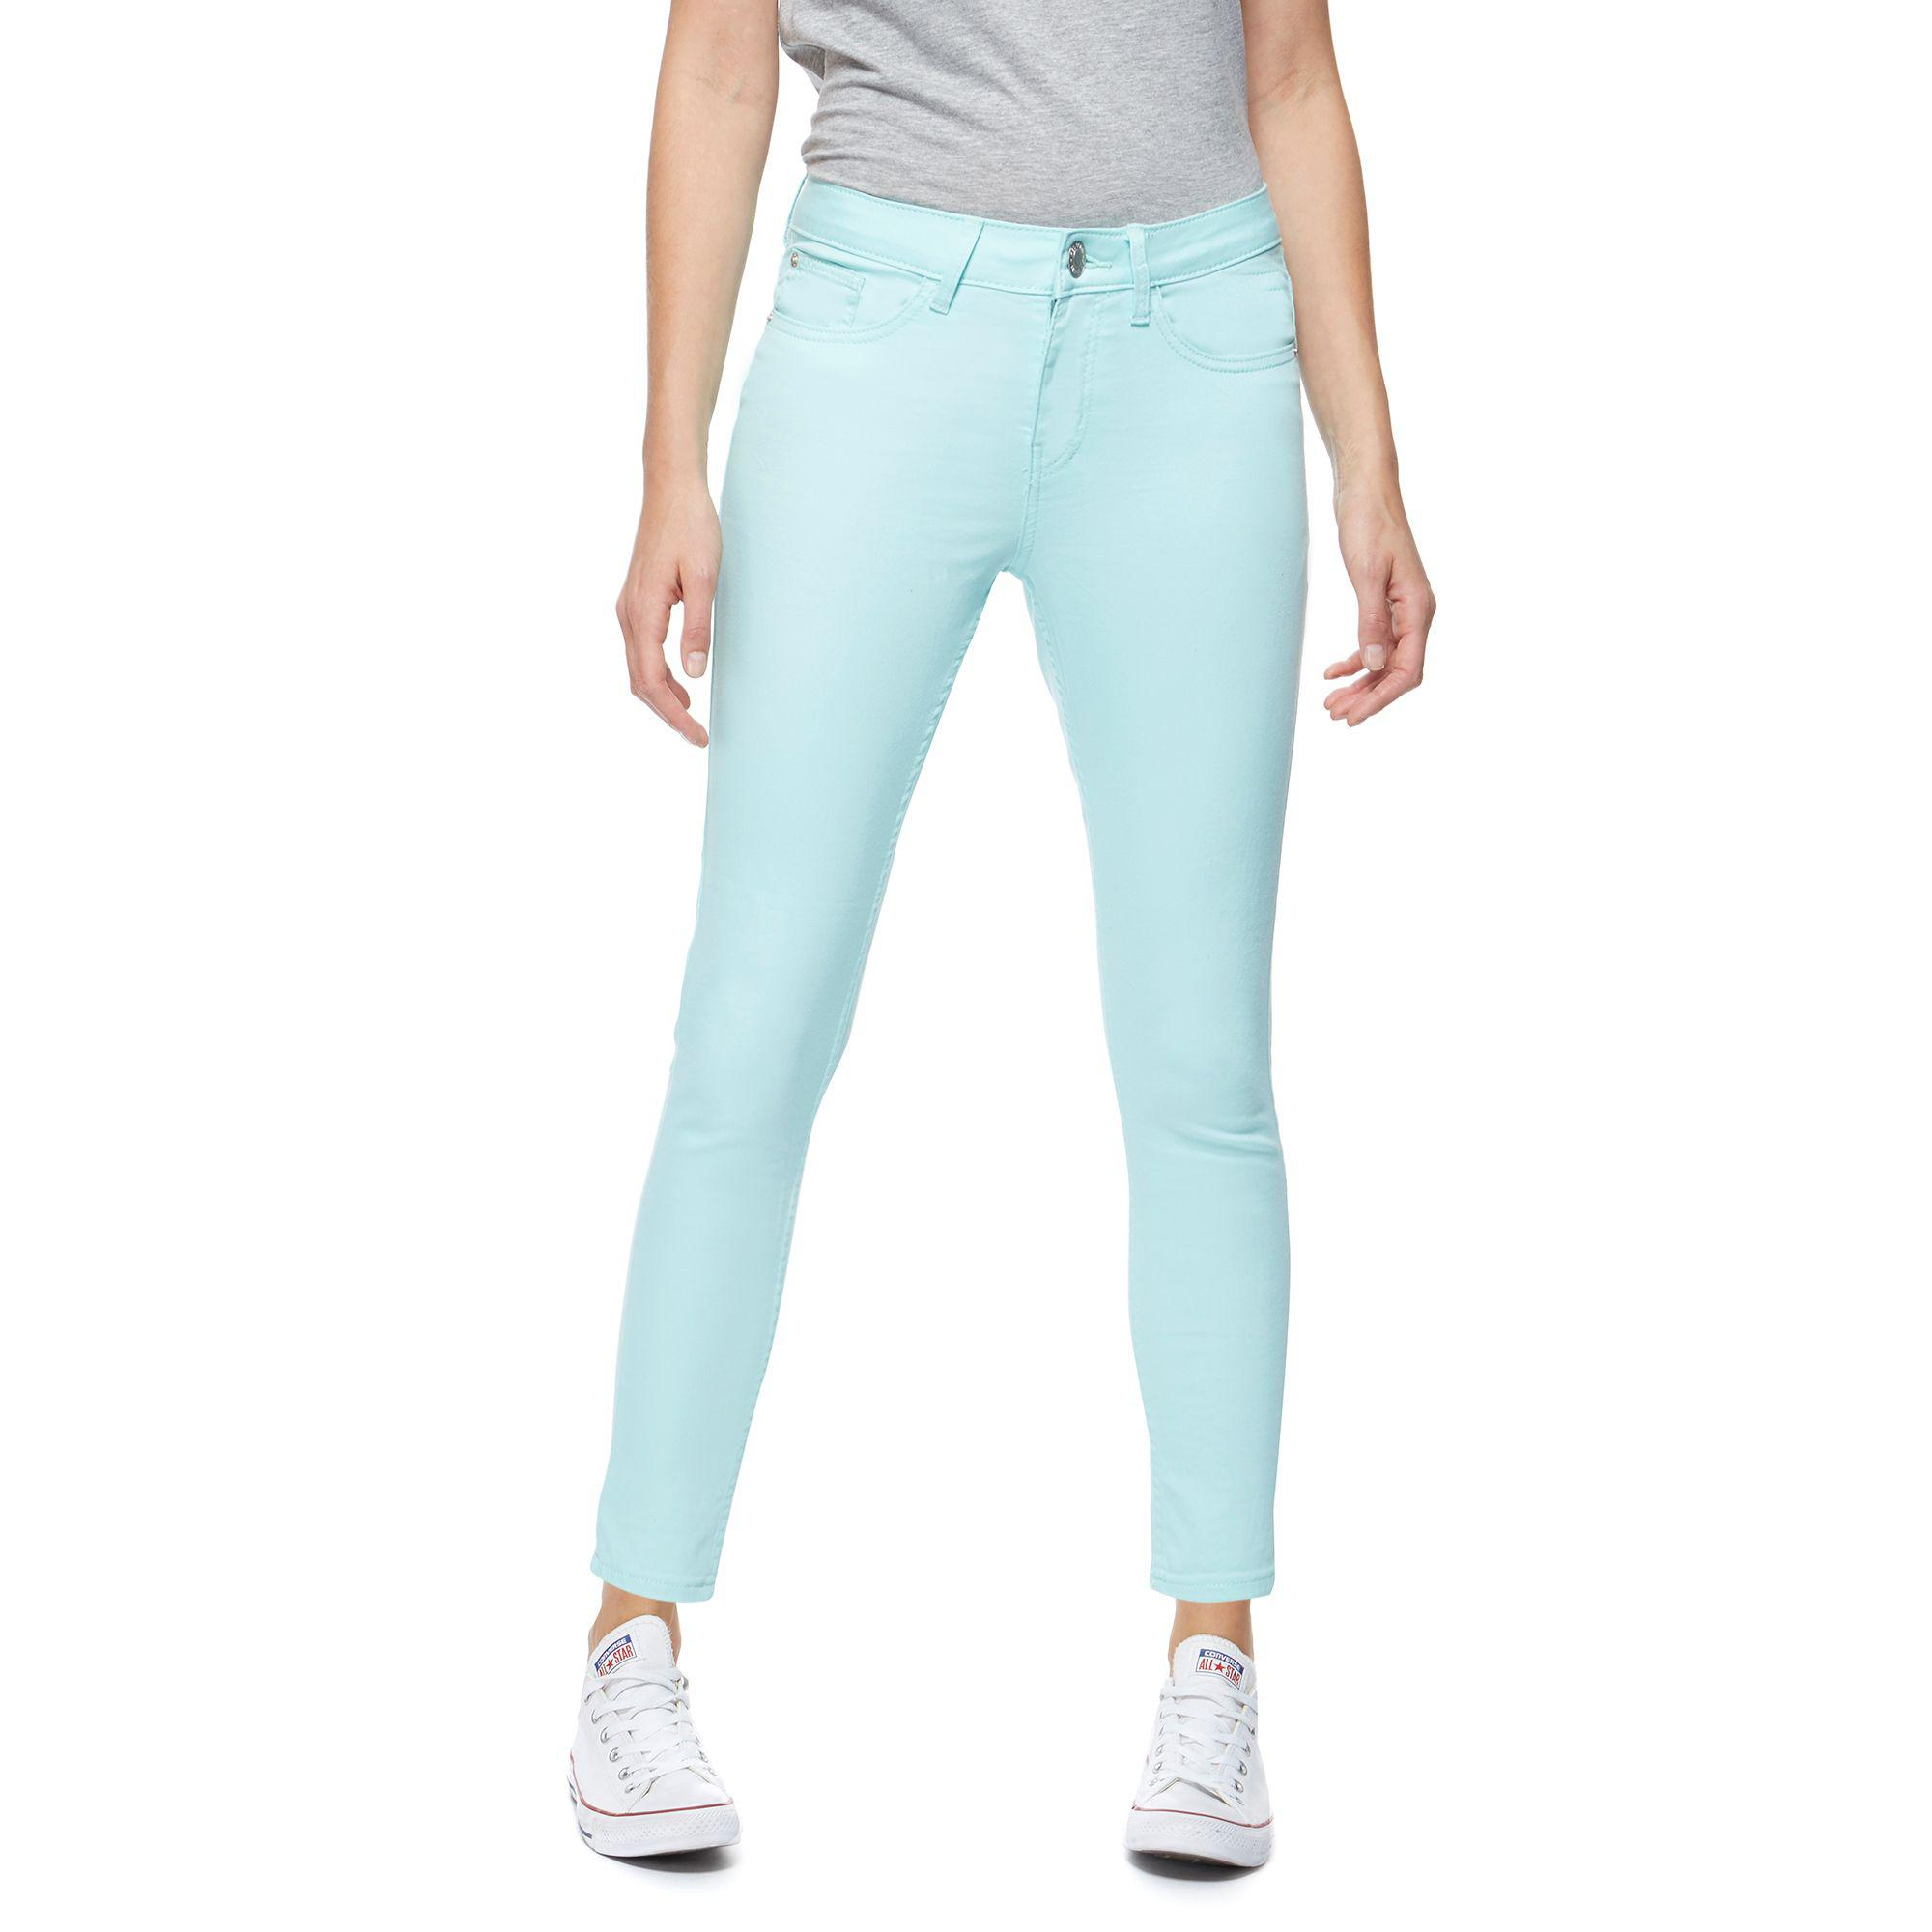 8276b2b9720 Red Herring Womens Pale Green Holly Super Skinny Ankle Grazer Jeans